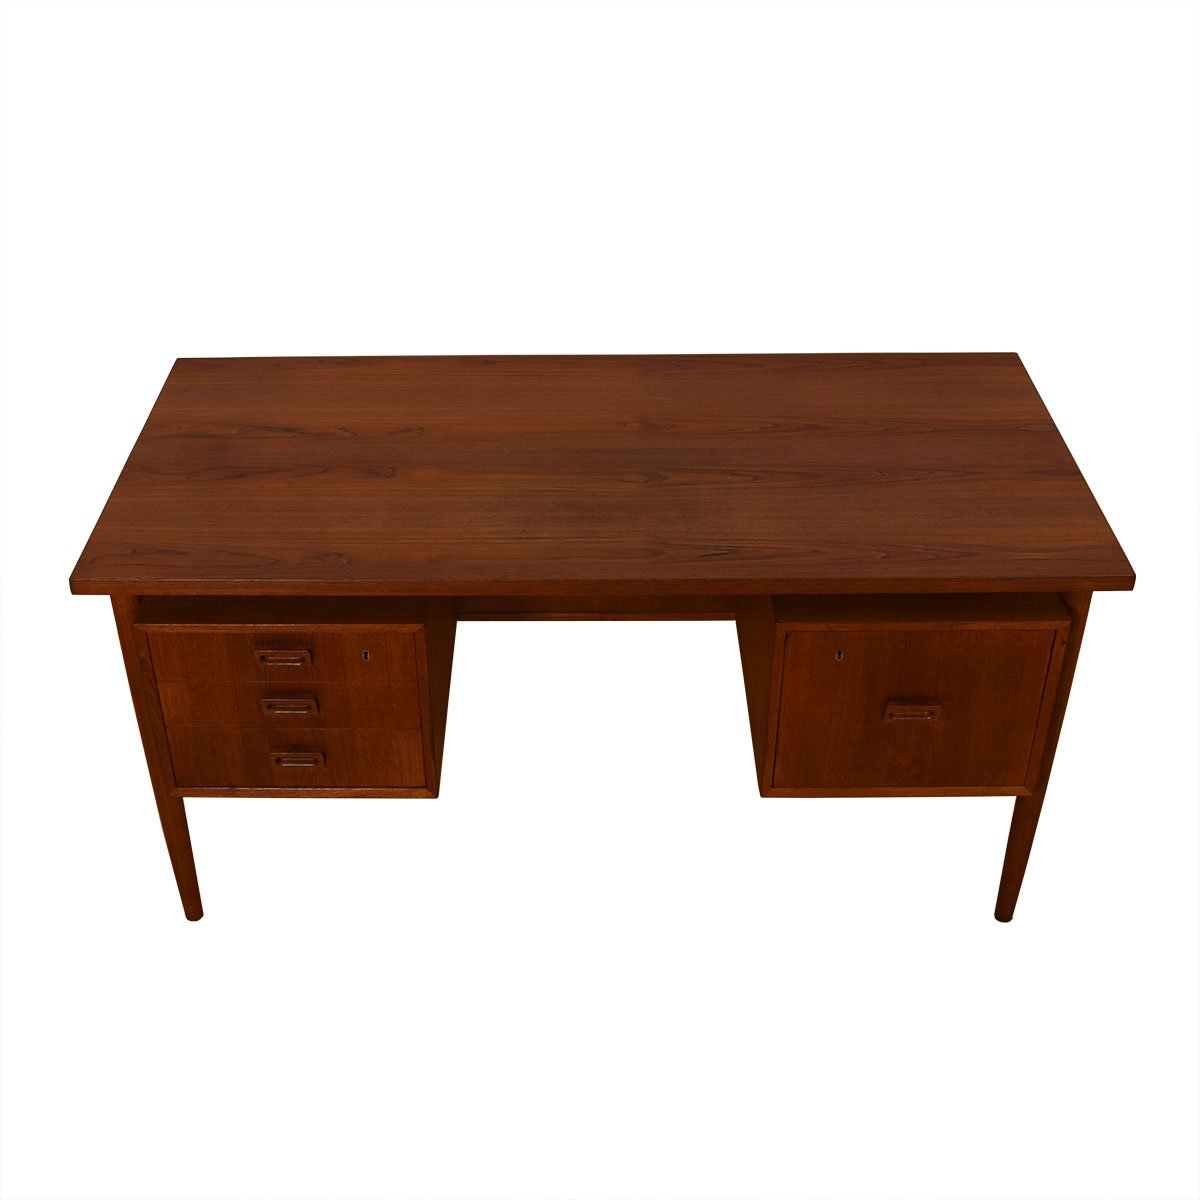 Mid-Sized Danish Modern Teak Desk